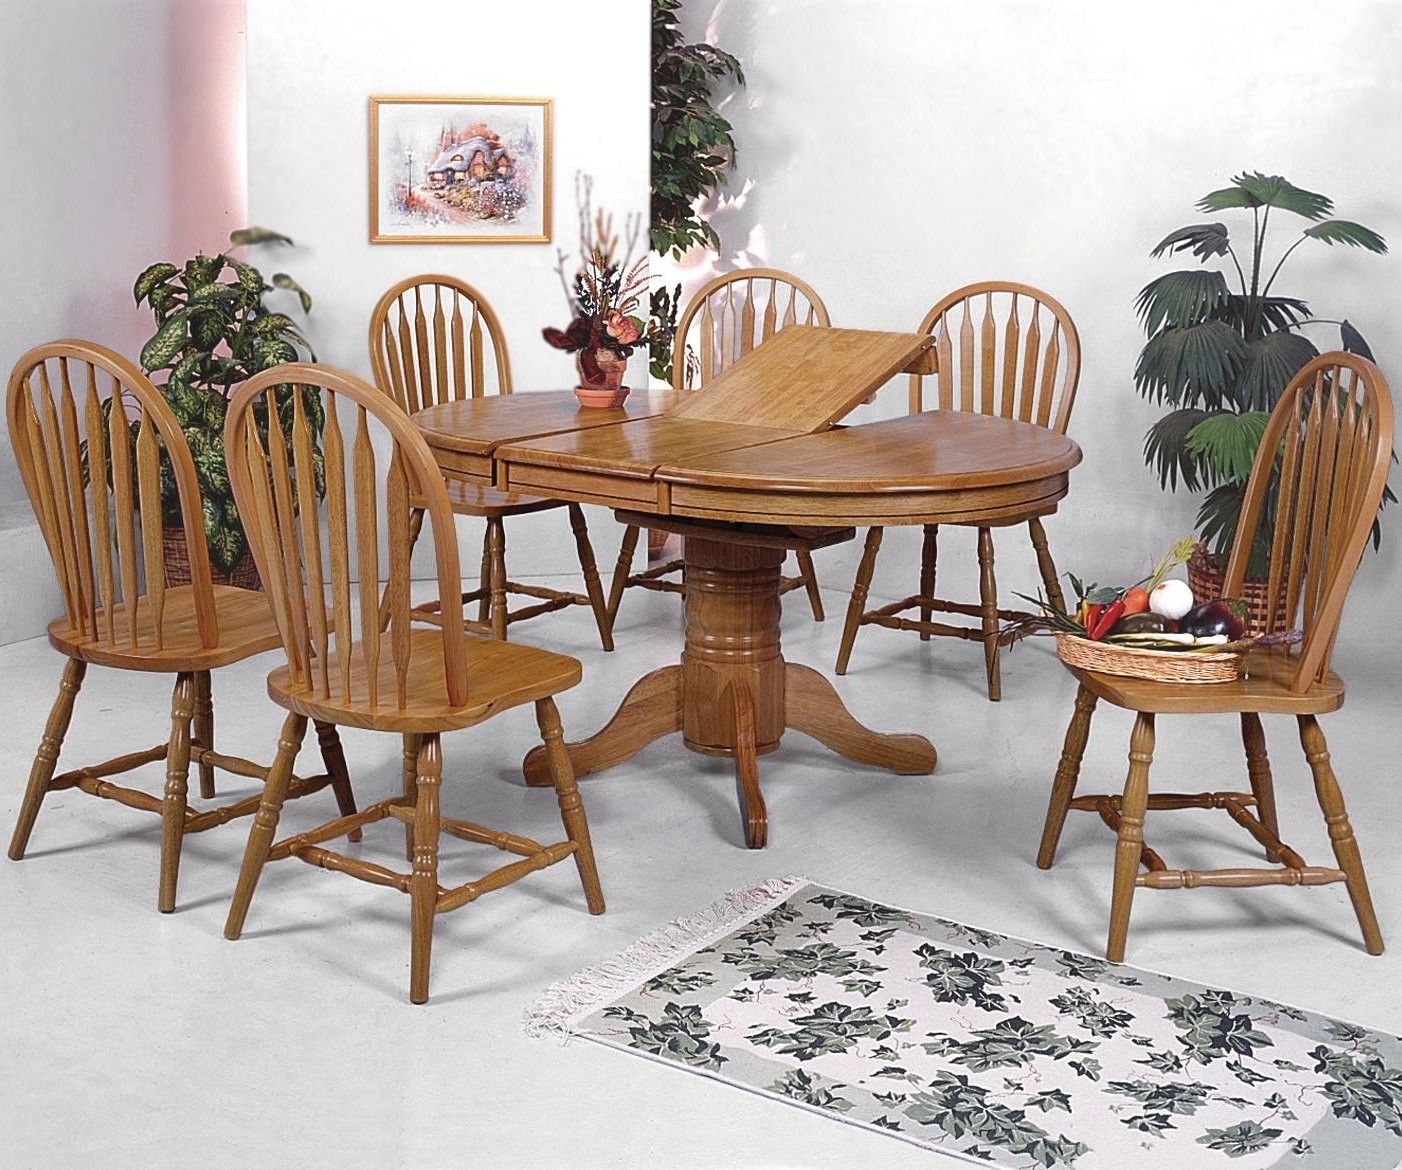 Most Recent Windsor Solid Piece Oval Dining Tab Solid Wood Dining Table And 6 Inside Light Oak Dining Tables And 6 Chairs (View 16 of 25)